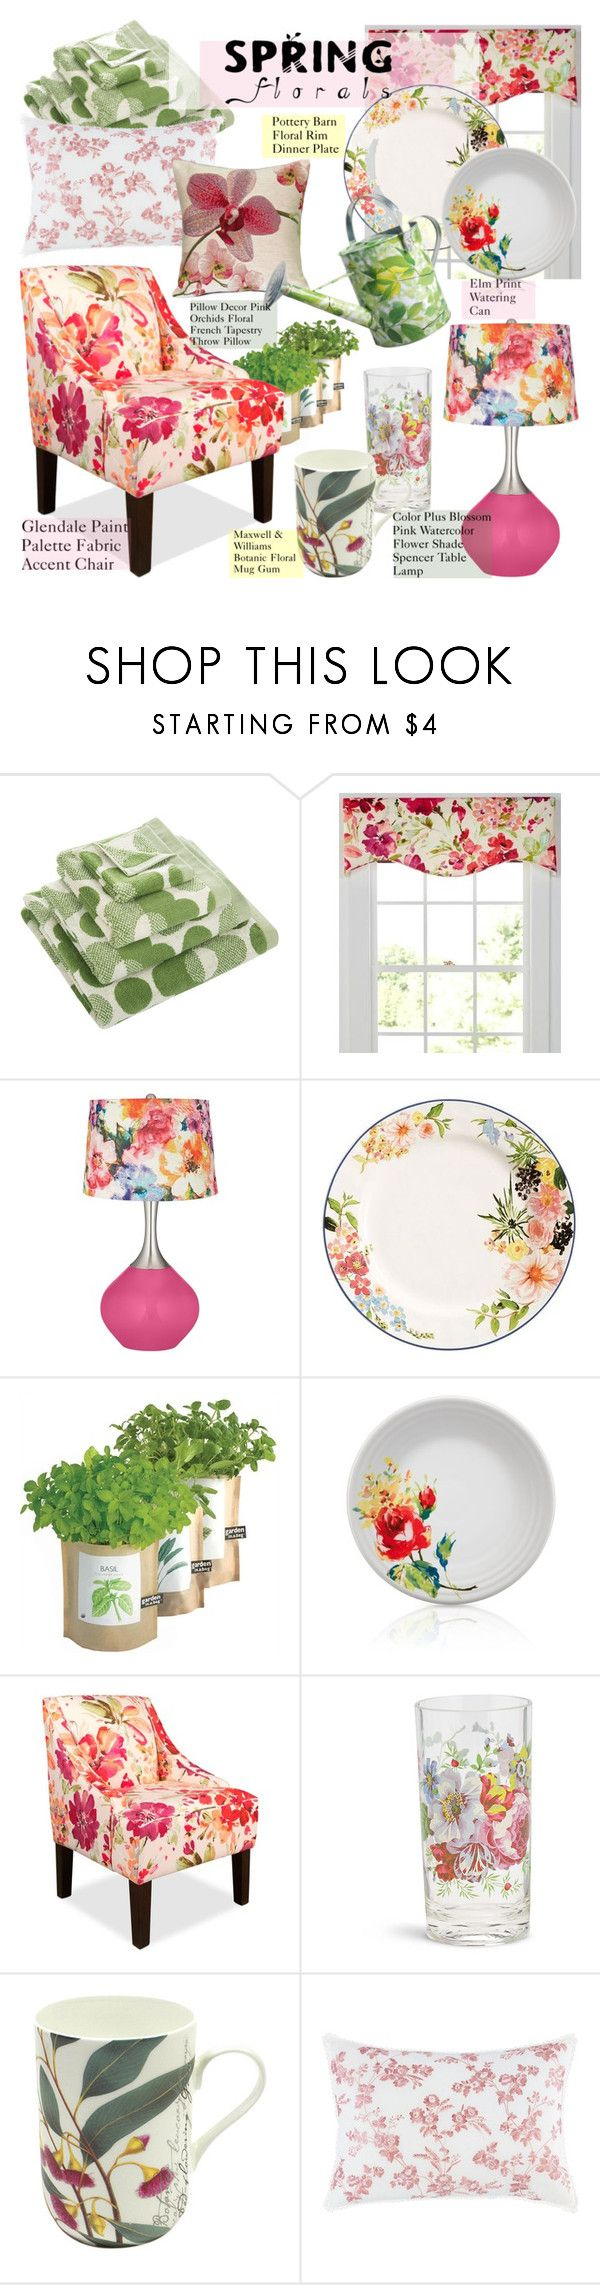 Country curtains logo -  Make Your Home Bloom By Sofirose Liked On Polyvore Featuring Interior Interiors Country Curtainsorla